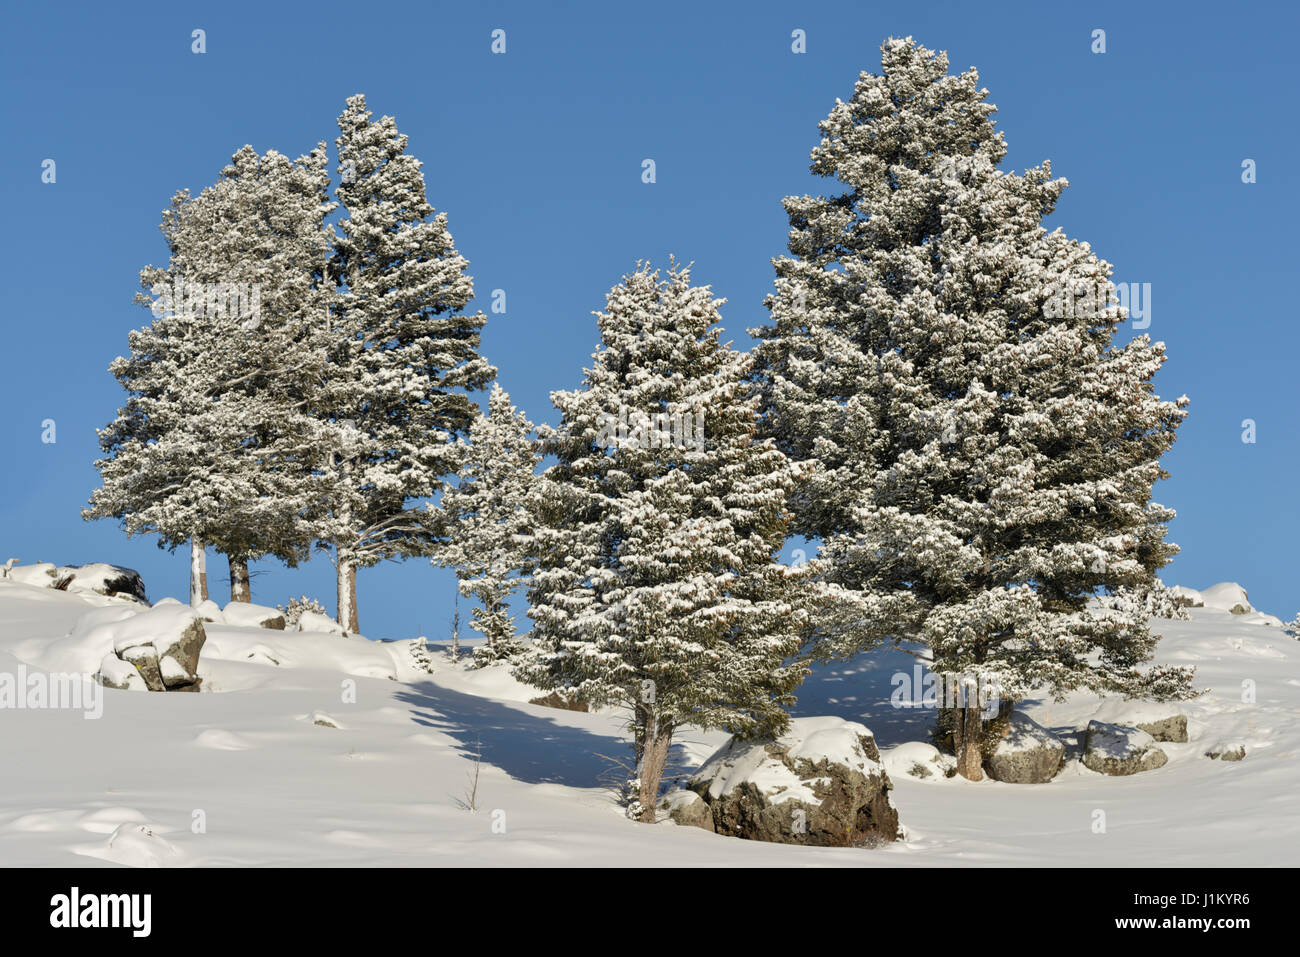 Snow covered conifer trees on a little hill under blue sky high up in the caldera of the Yellowstone area, Winter - Stock Image